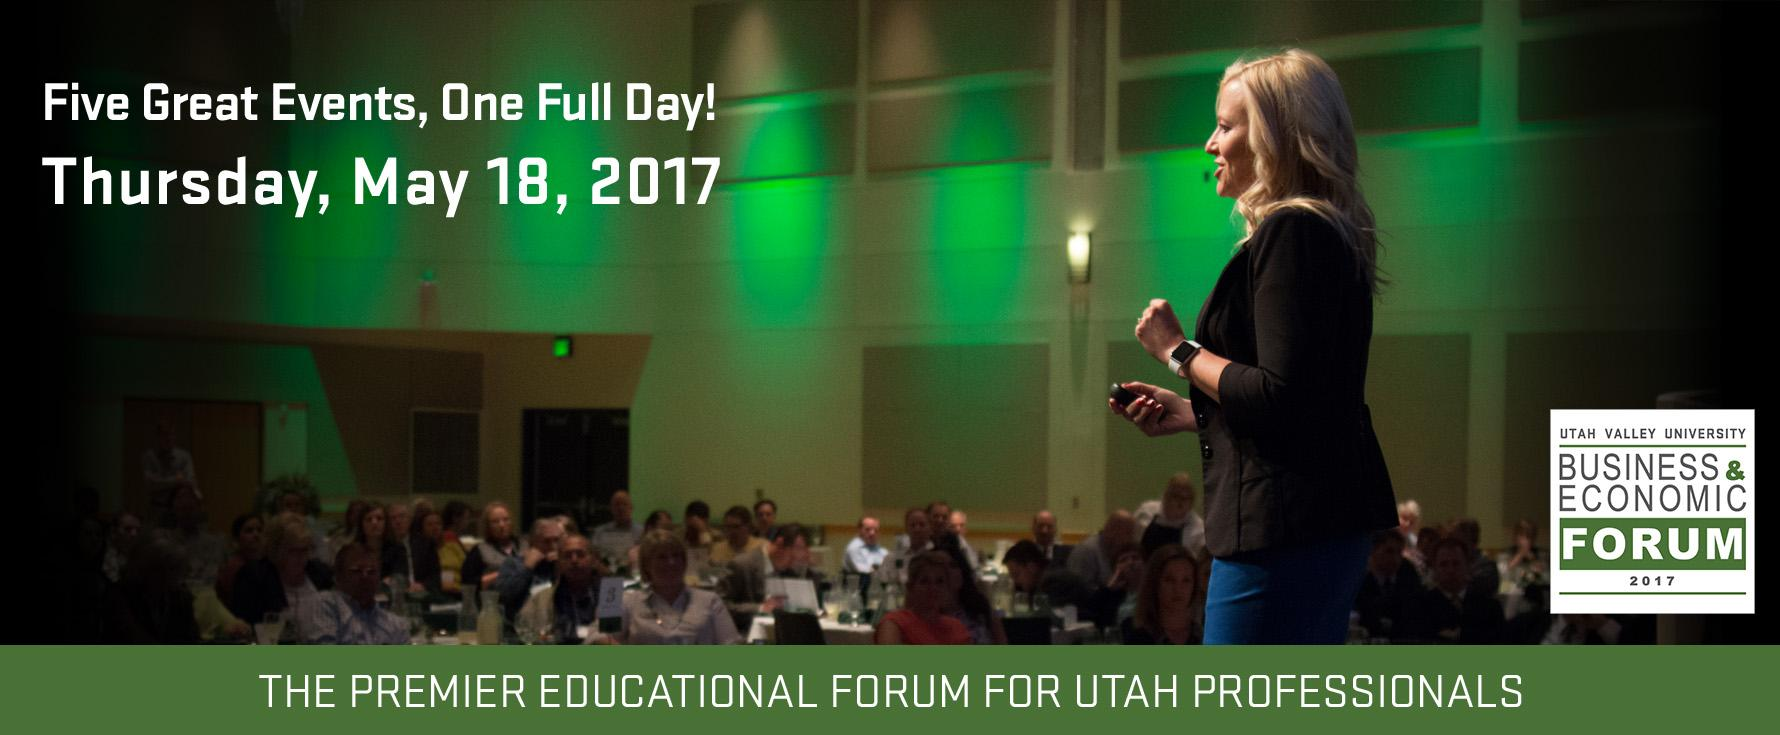 Five Great Events, One Full Day! The UVU Business & Economic Forum. Register Now!